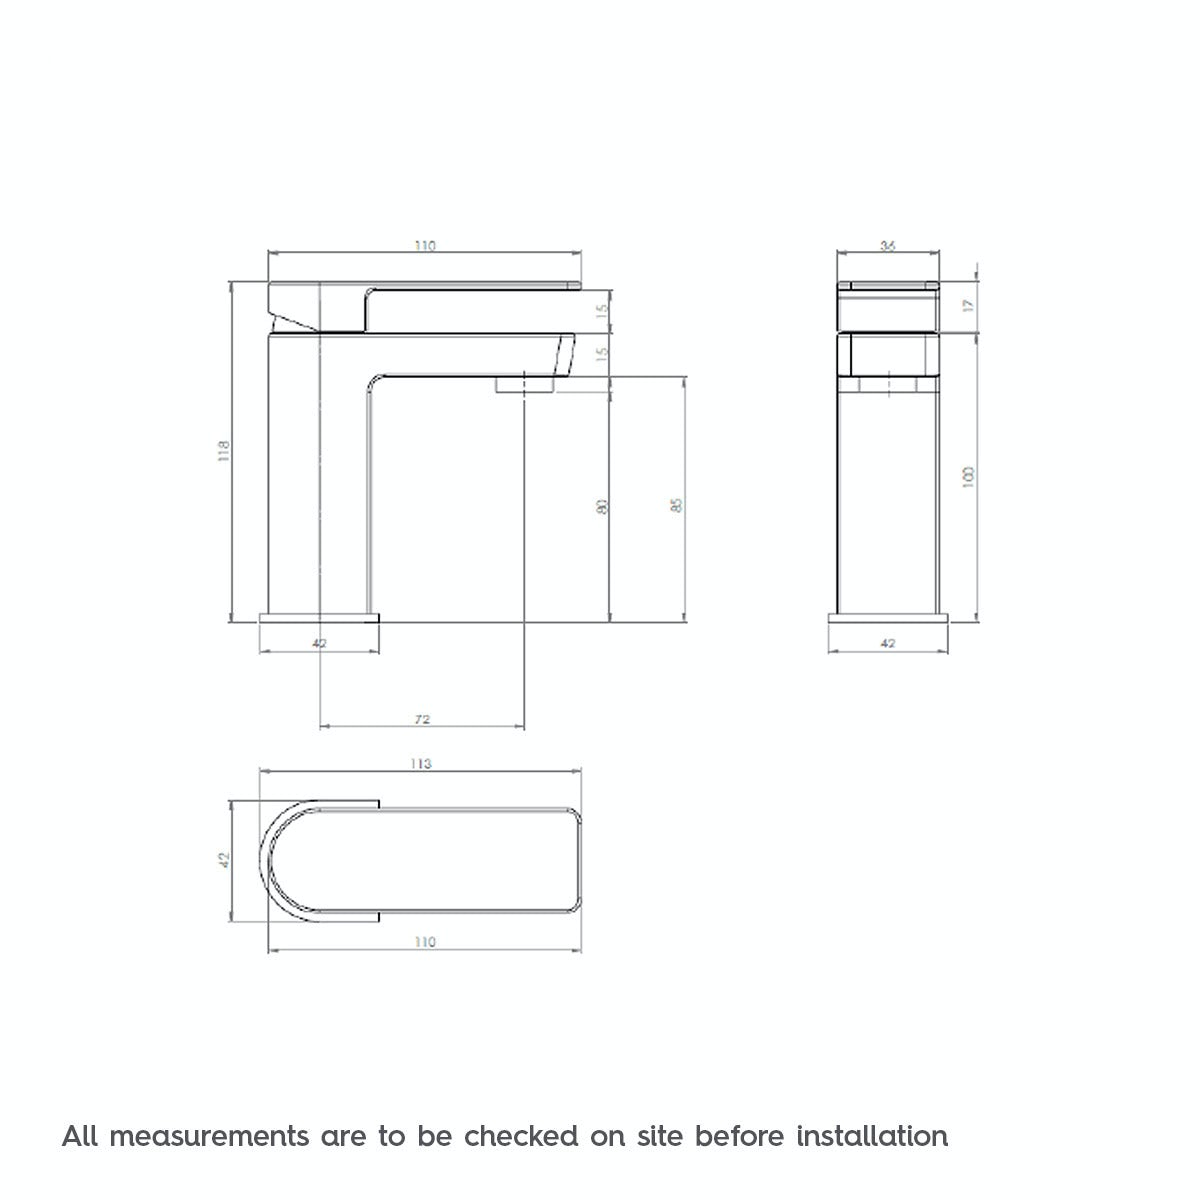 Dimensions for Mode Ellis cloakroom basin mixer tap